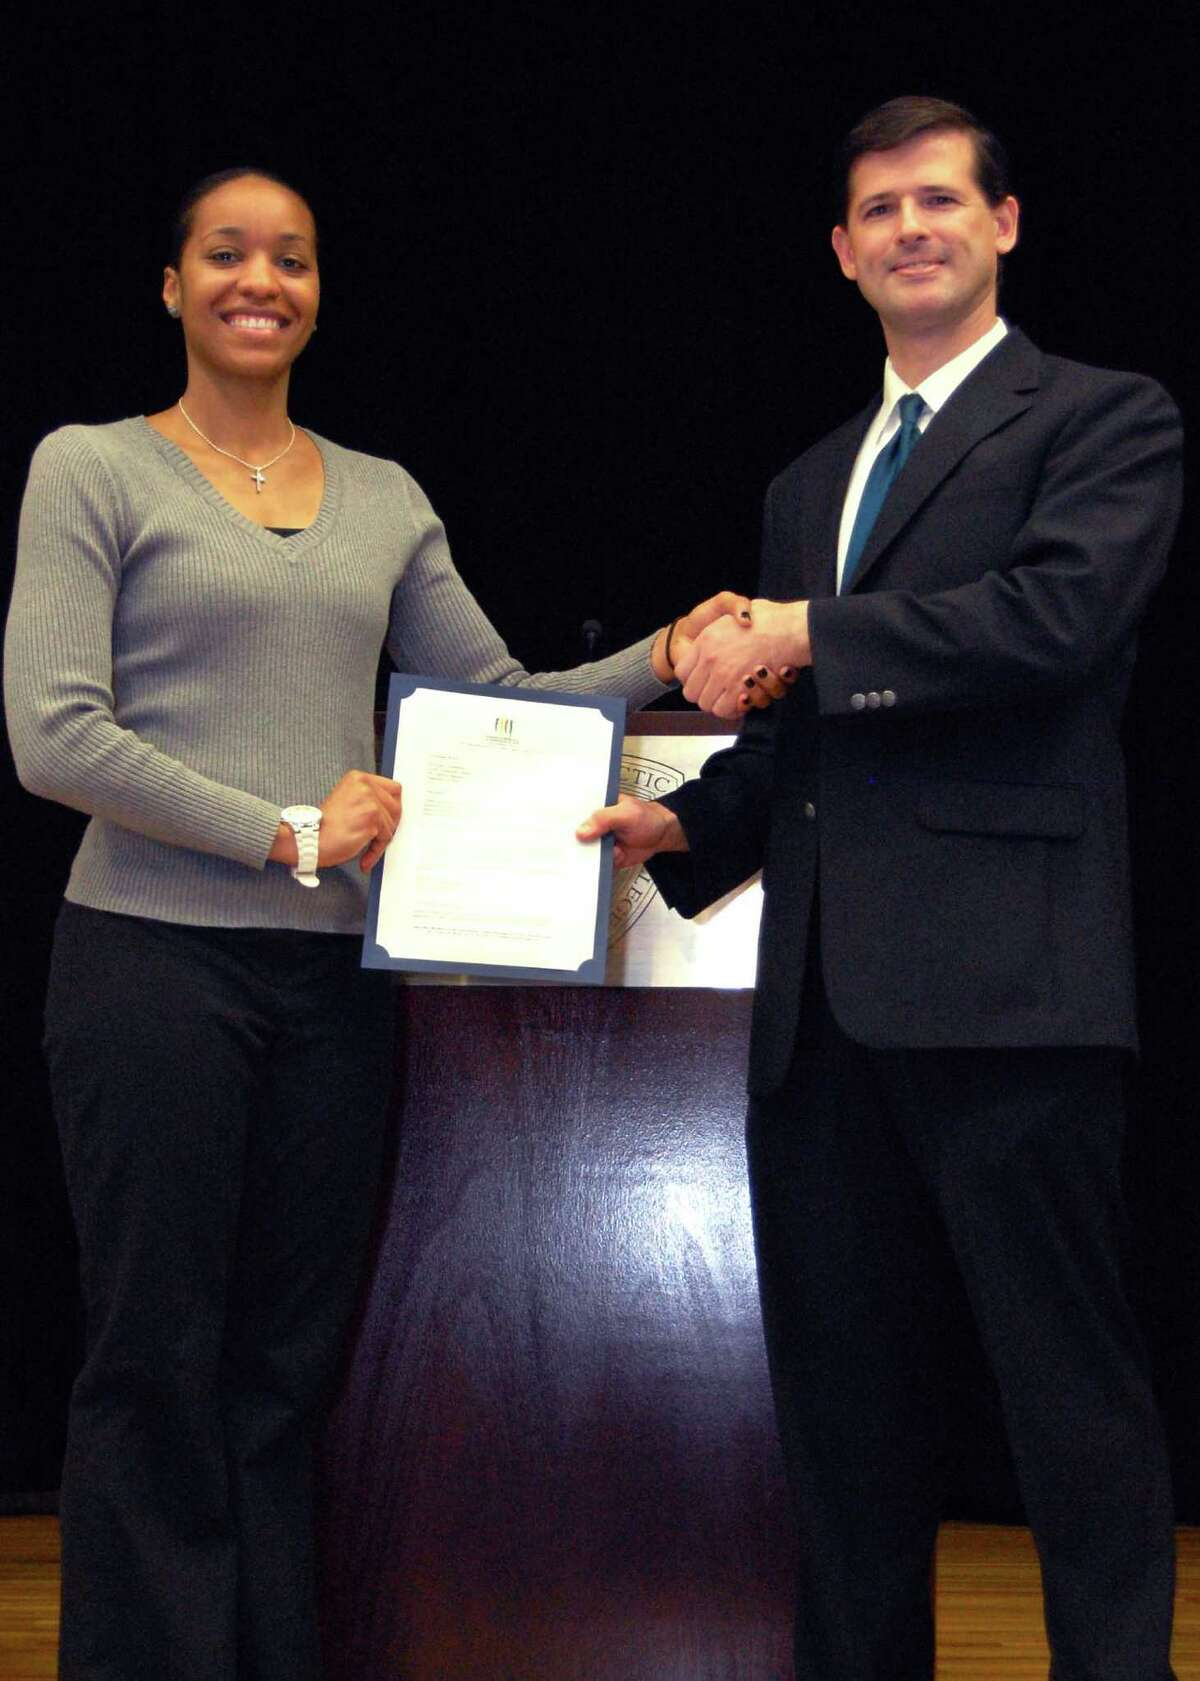 Texas Chiropractic College student Kelley Humphries holds her scholarship certificate with faculty member John Ward.